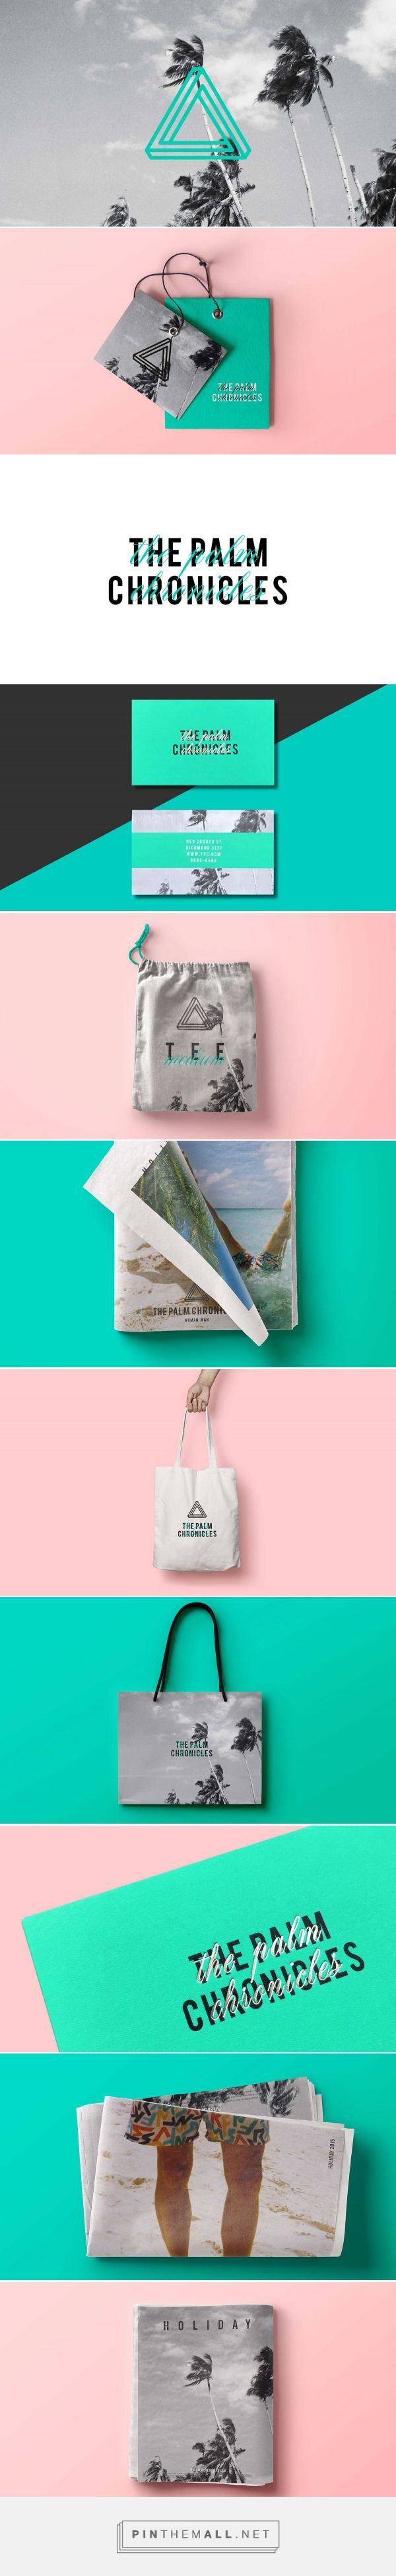 The Palm Chronicles Branding by Lucy Guernier | Fivestar Branding Agency – Design and Branding Agency & Curated Inspiration Gallery